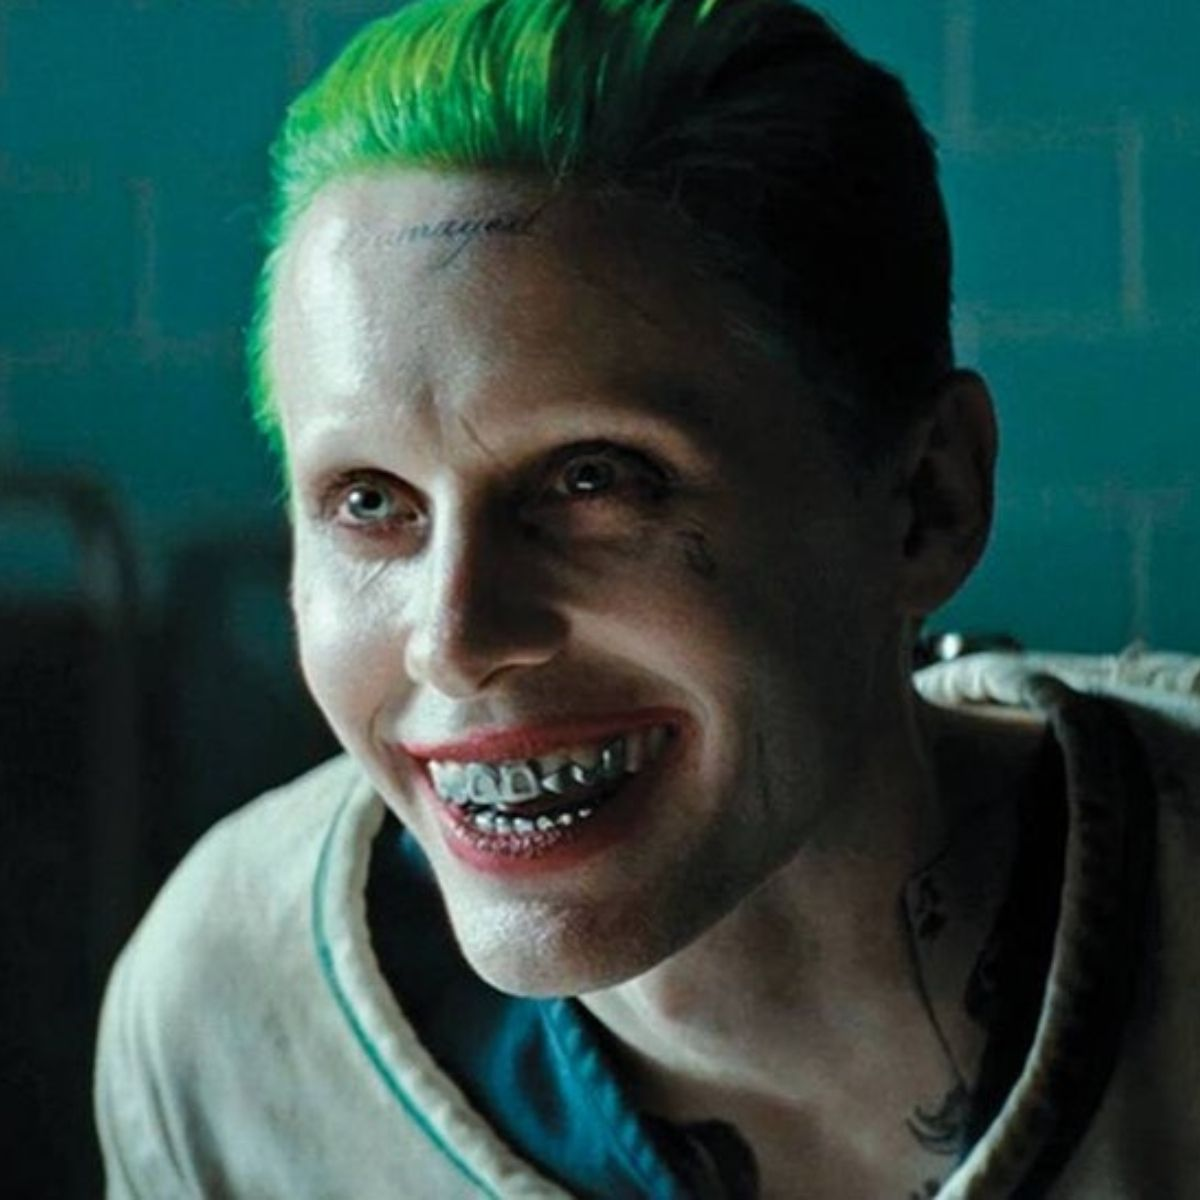 Suicide Squad director claims Jared Leto was MISTREATED; Says his performance was 'ripped out of the movie'